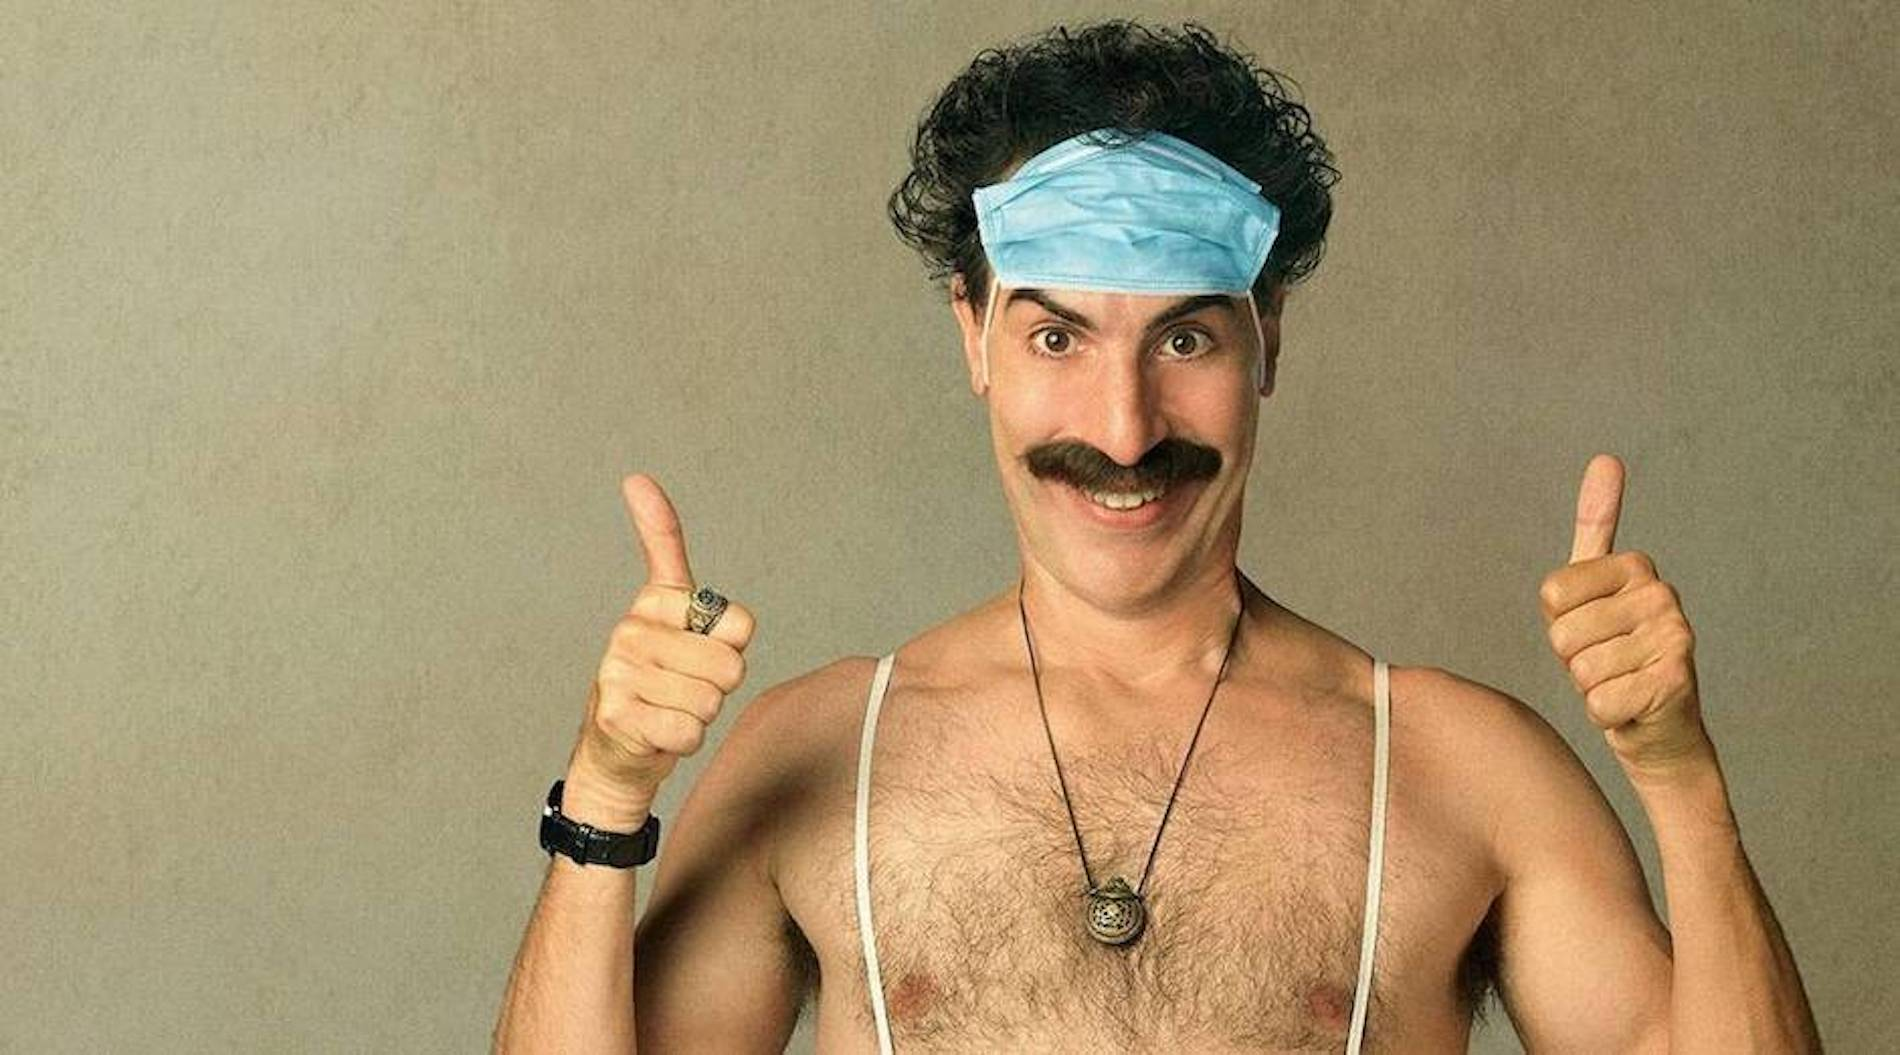 Borat Subsequent Moviefilm Review: Sacha Baron Cohen Returns to Skewer Trump's America